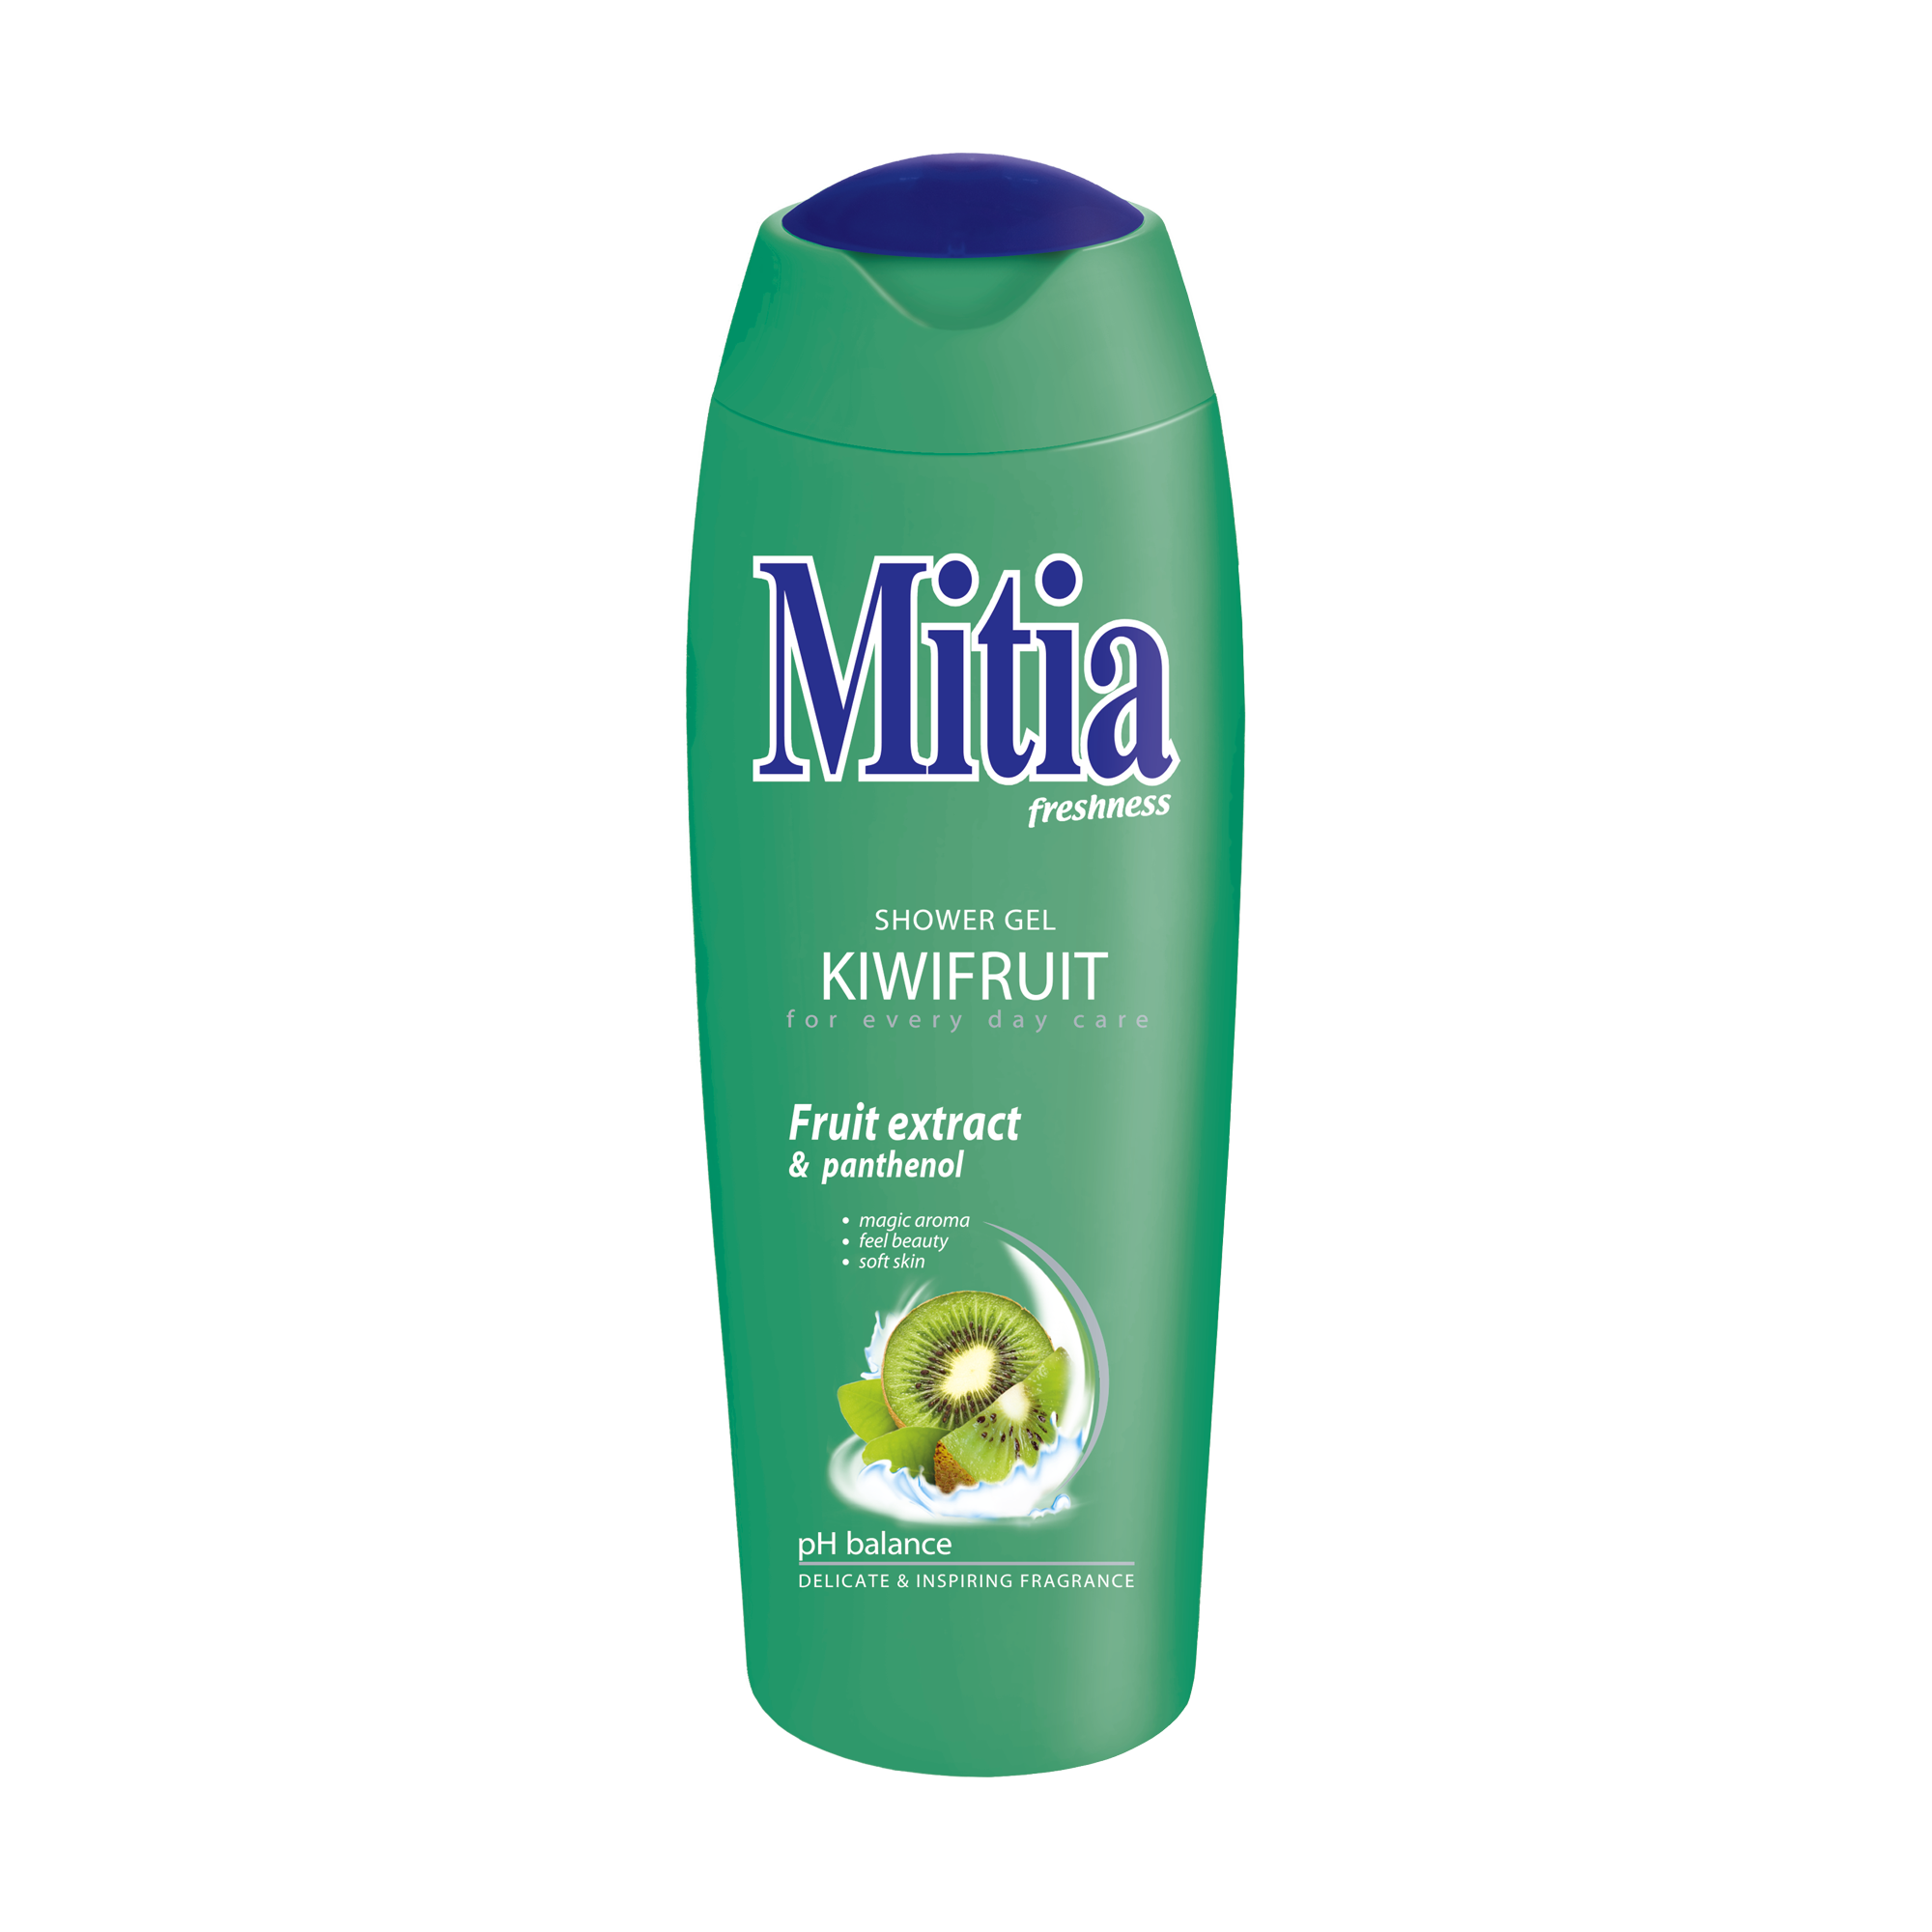 Mitia freshness Kiwifruit shower gel